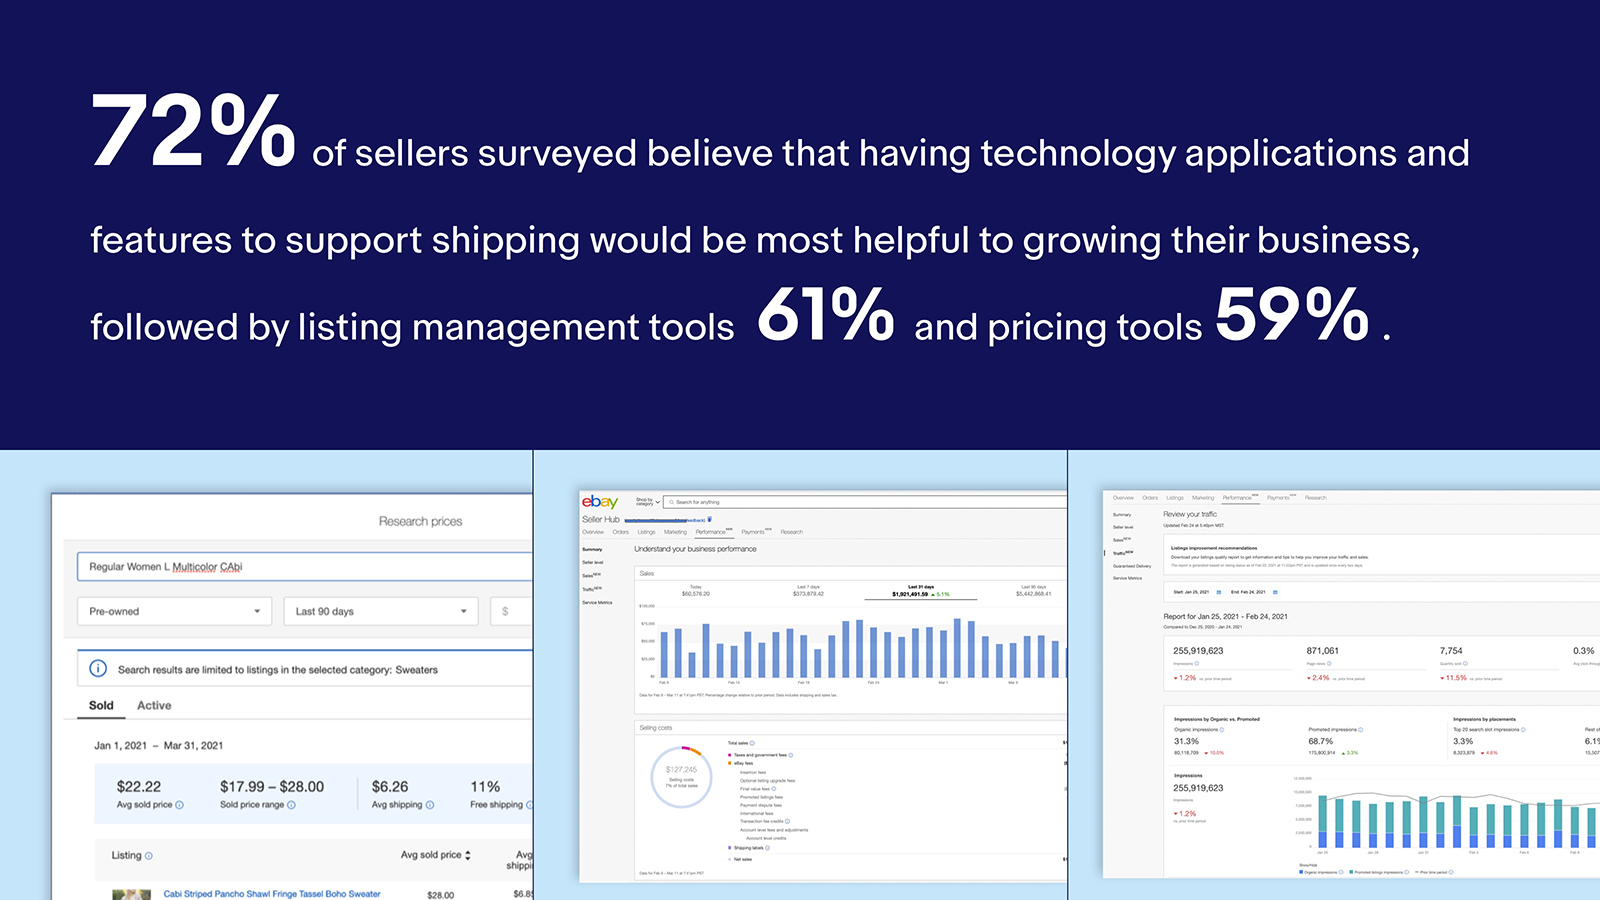 72% of sellers surveyed believe that having technology applications and features to support shipping would be most helpful to growing their business, followed by listing management tools (61%) and pricing tools (59%).